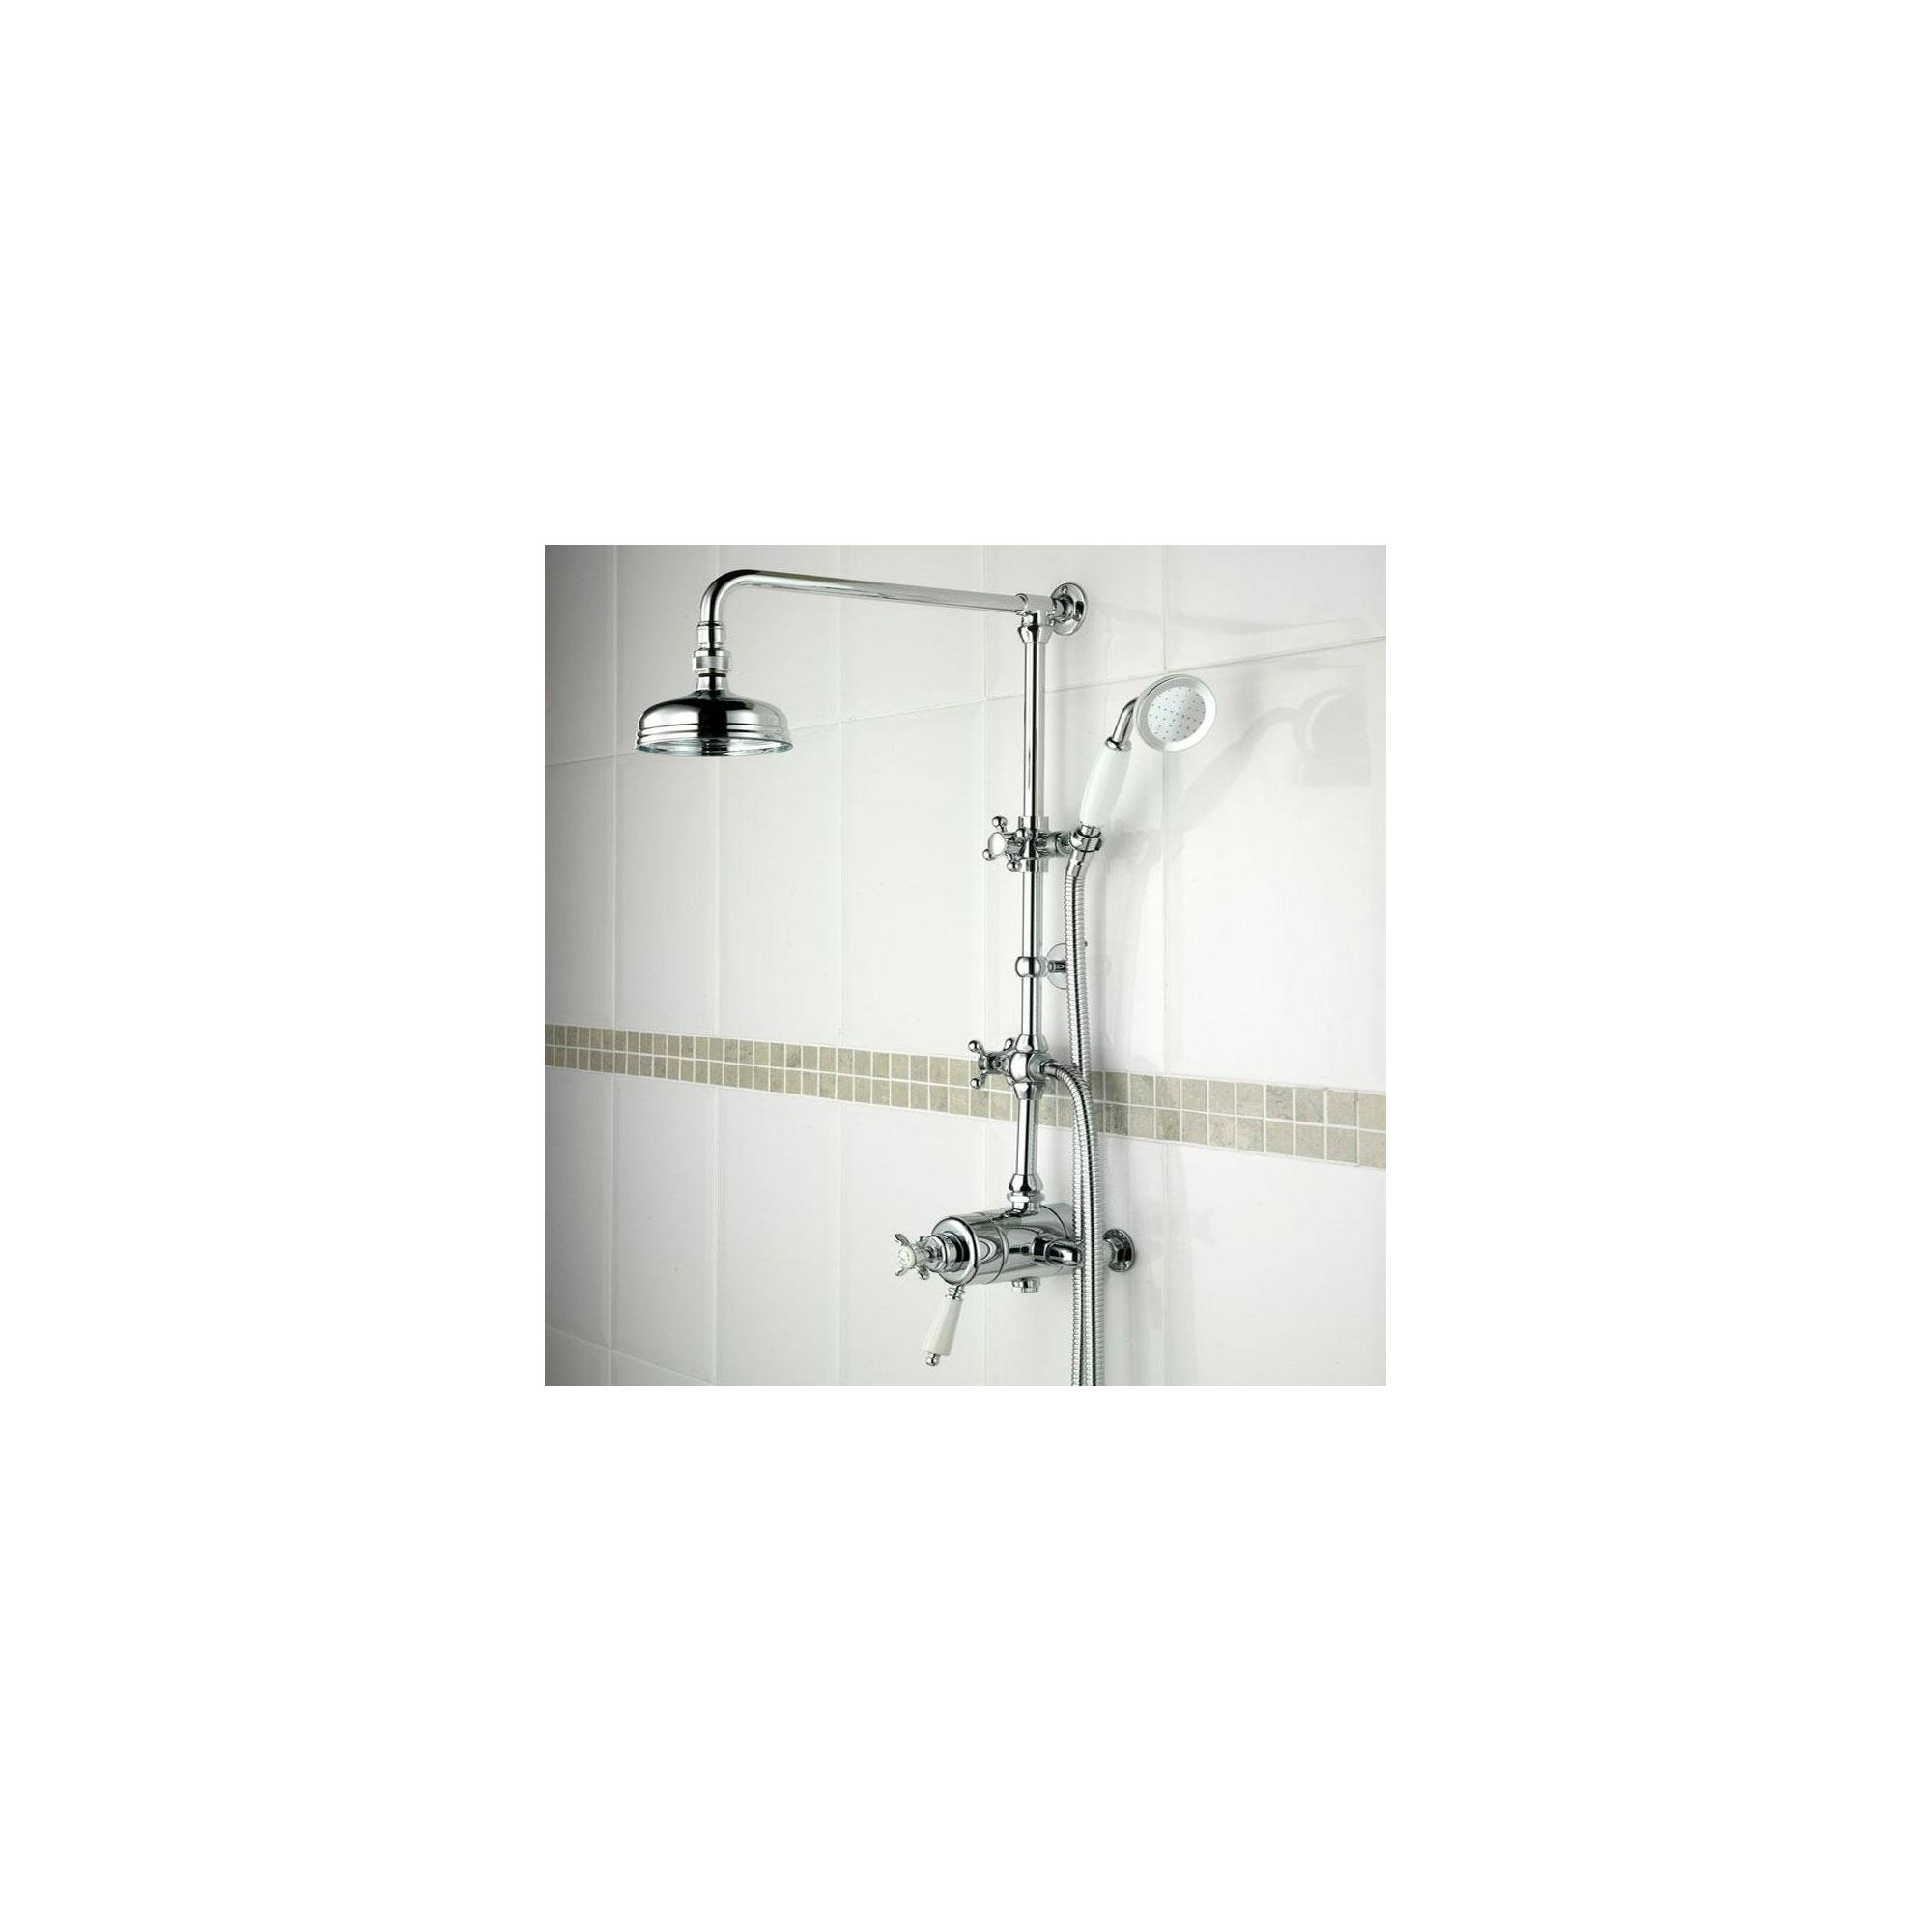 Bristan 1901 Thermostatic Surface Mounted Shower with Rigid Riser and Divertor to Shower Handset Chrome Plated at Tesco Direct